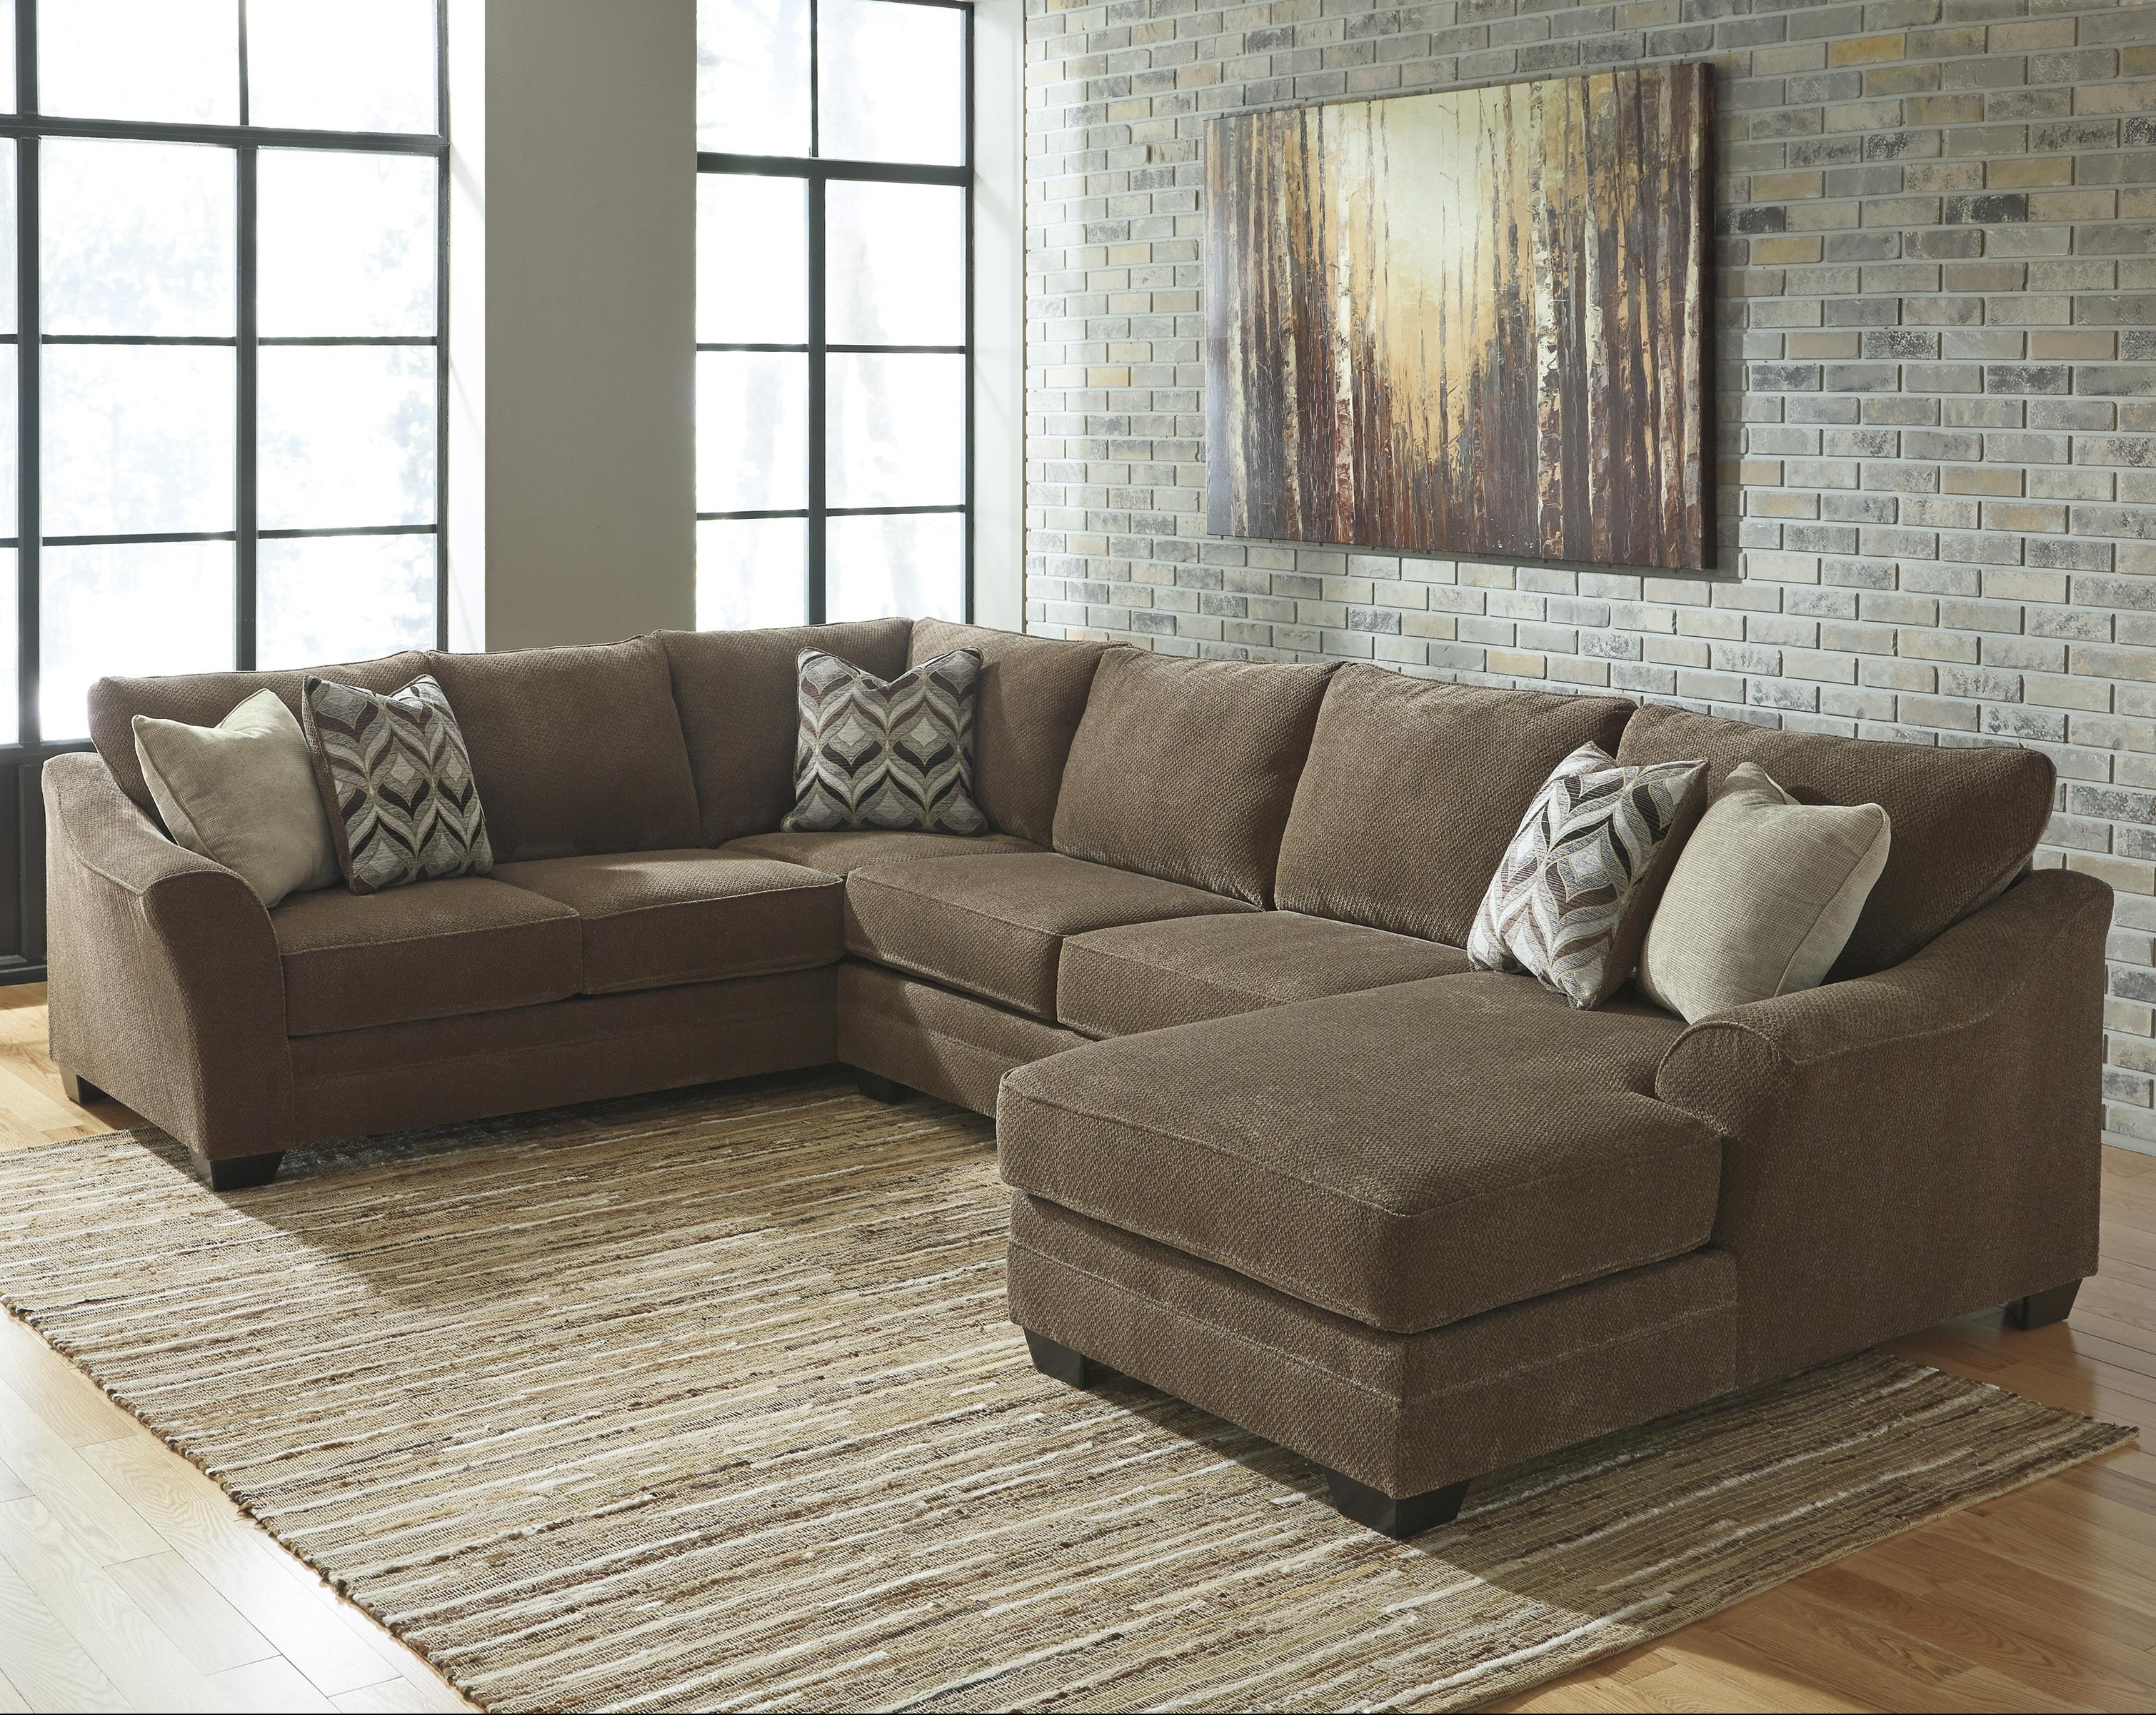 Left Chaise Sectionals With Regard To Newest Benchcraft Justyna Contemporary 3 Piece Sectional With Left Chaise (View 2 of 15)